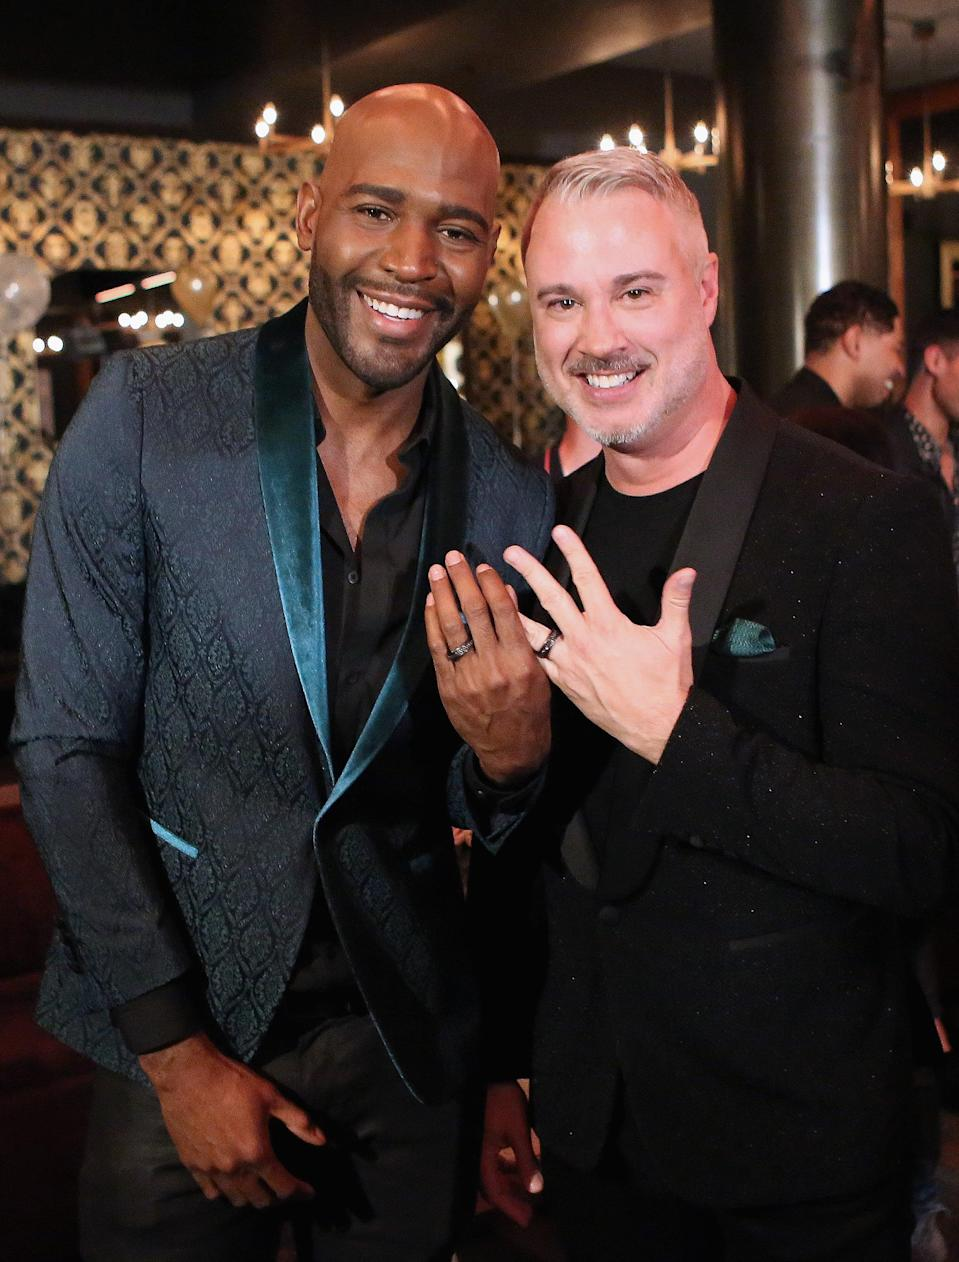 "<p><a href=""https://www.usmagazine.com/celebrity-news/news/queer-eyes-karamo-brown-engaged-to-ian-jordan/"" class=""link rapid-noclick-resp"" rel=""nofollow noopener"" target=""_blank"" data-ylk=""slk:The Queer Eye star popped the question"">The <strong>Queer Eye</strong> star popped the question</a> to his partner of eight years in May 2018.</p>"